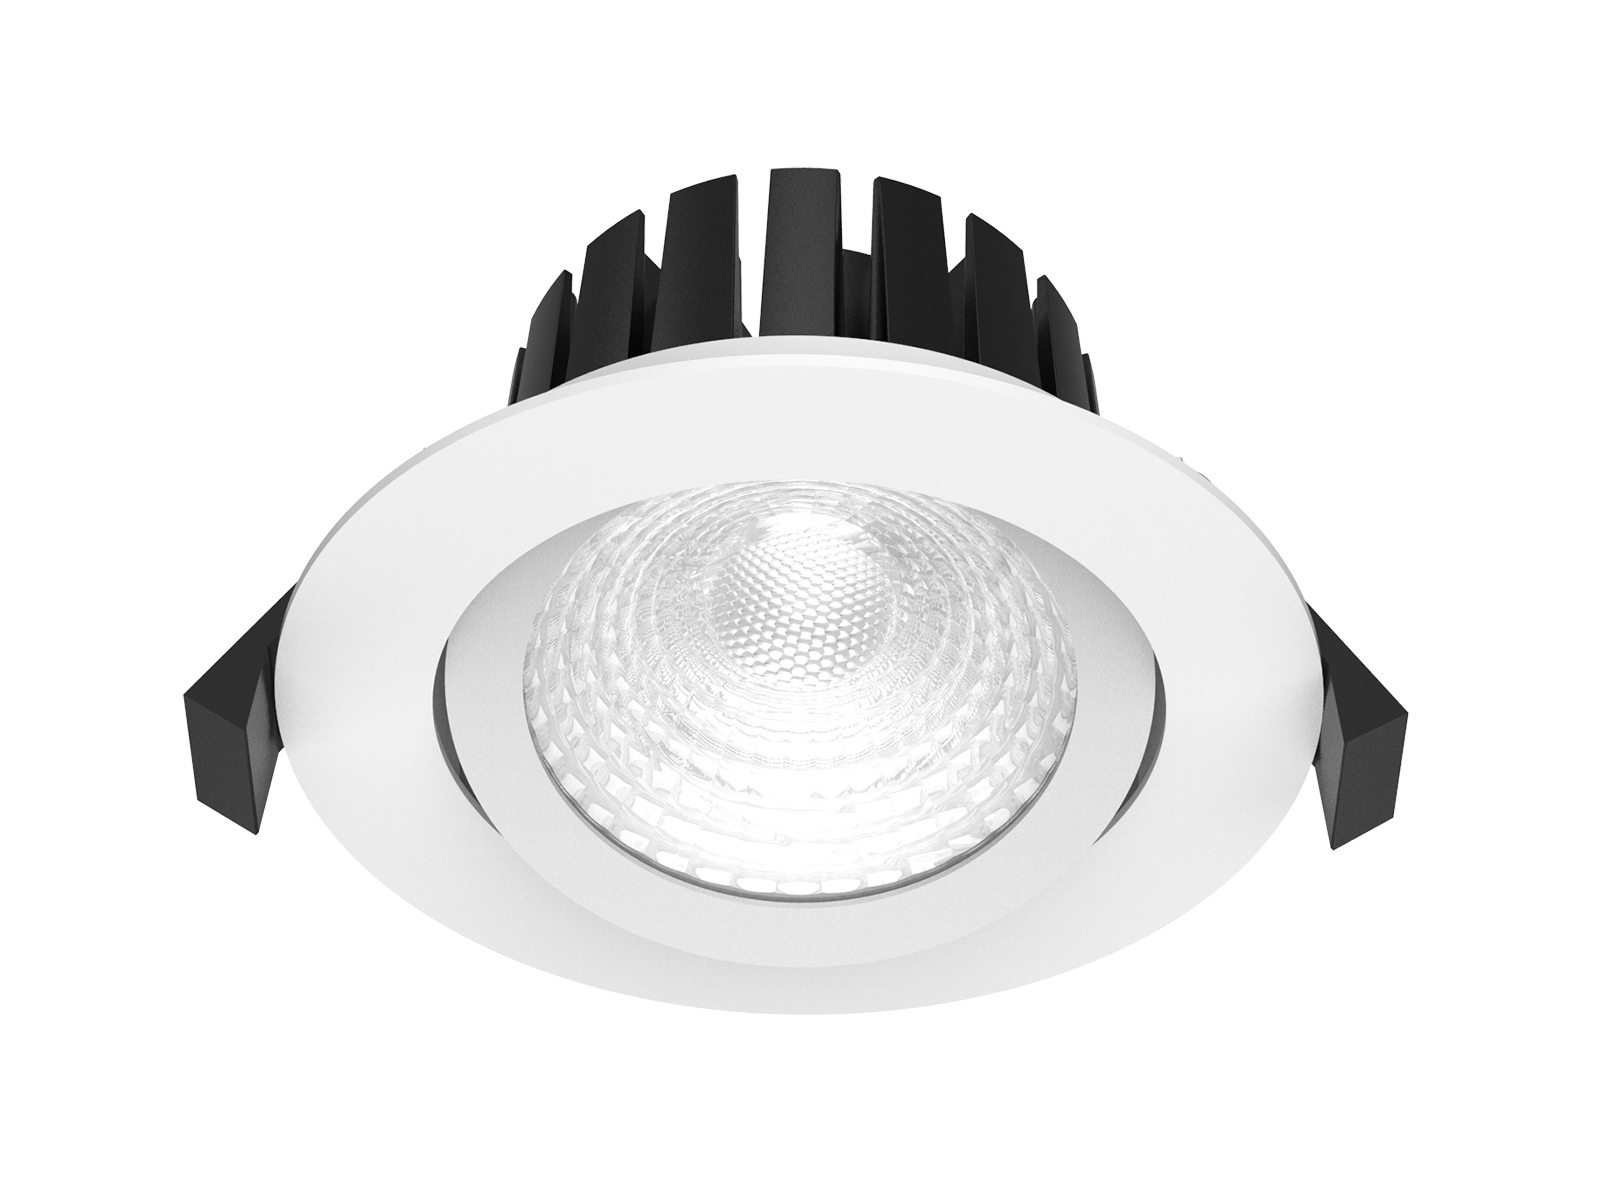 CL102 3 IP65 LED Downlight